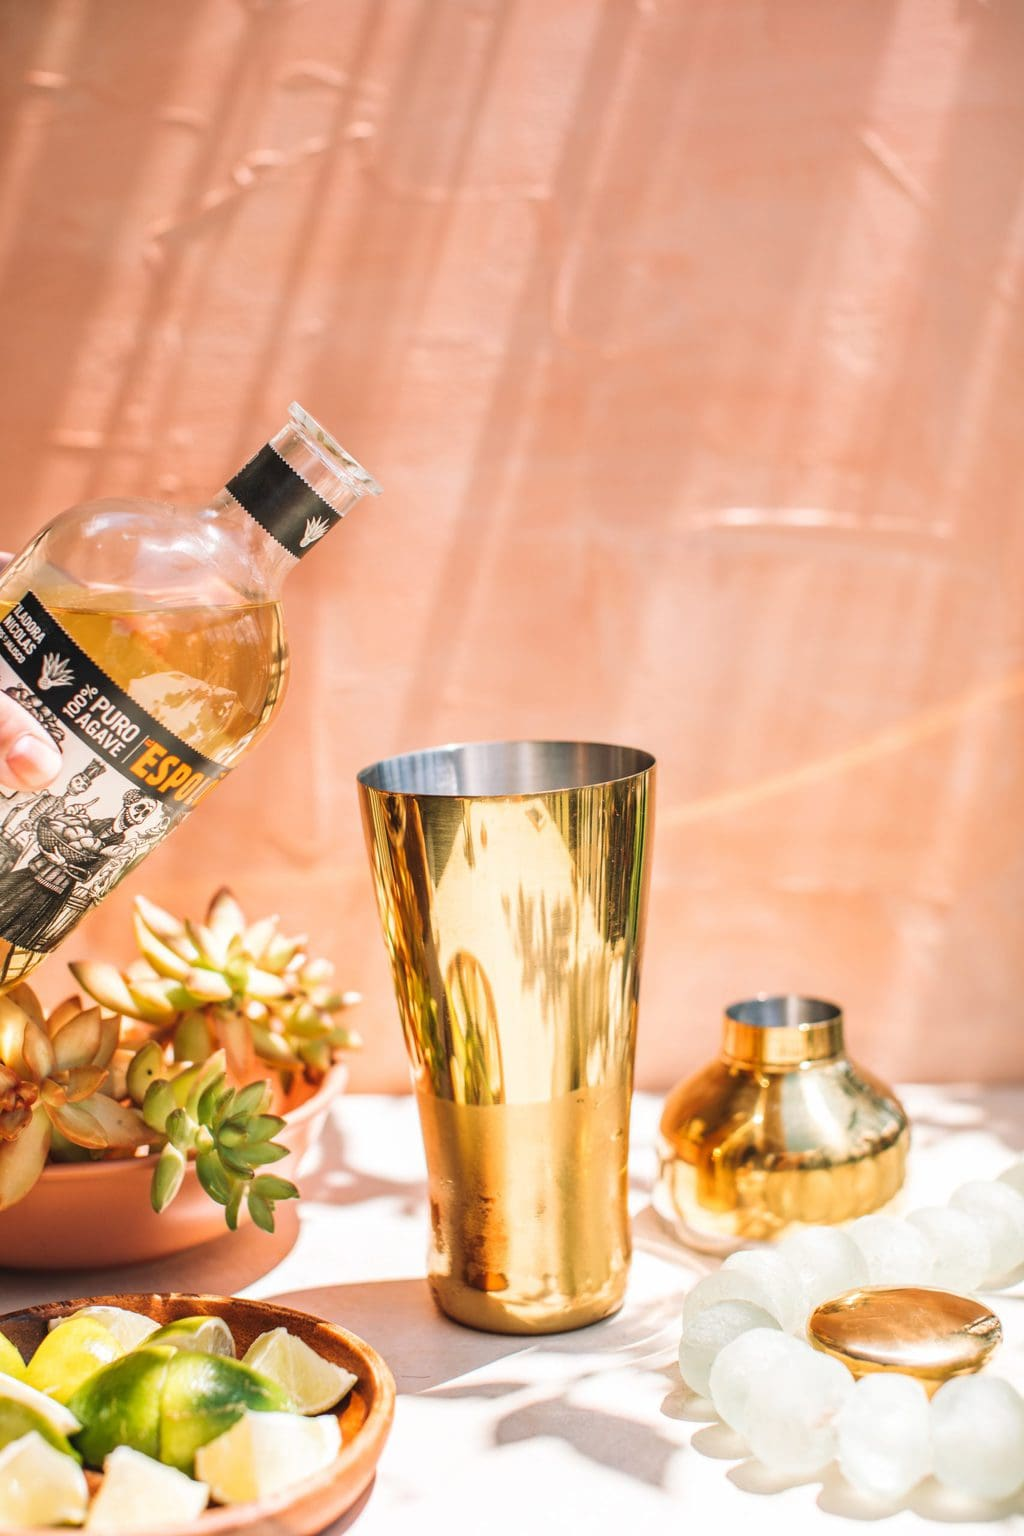 reposado tequila bottle hovering over gold cocktail shaker